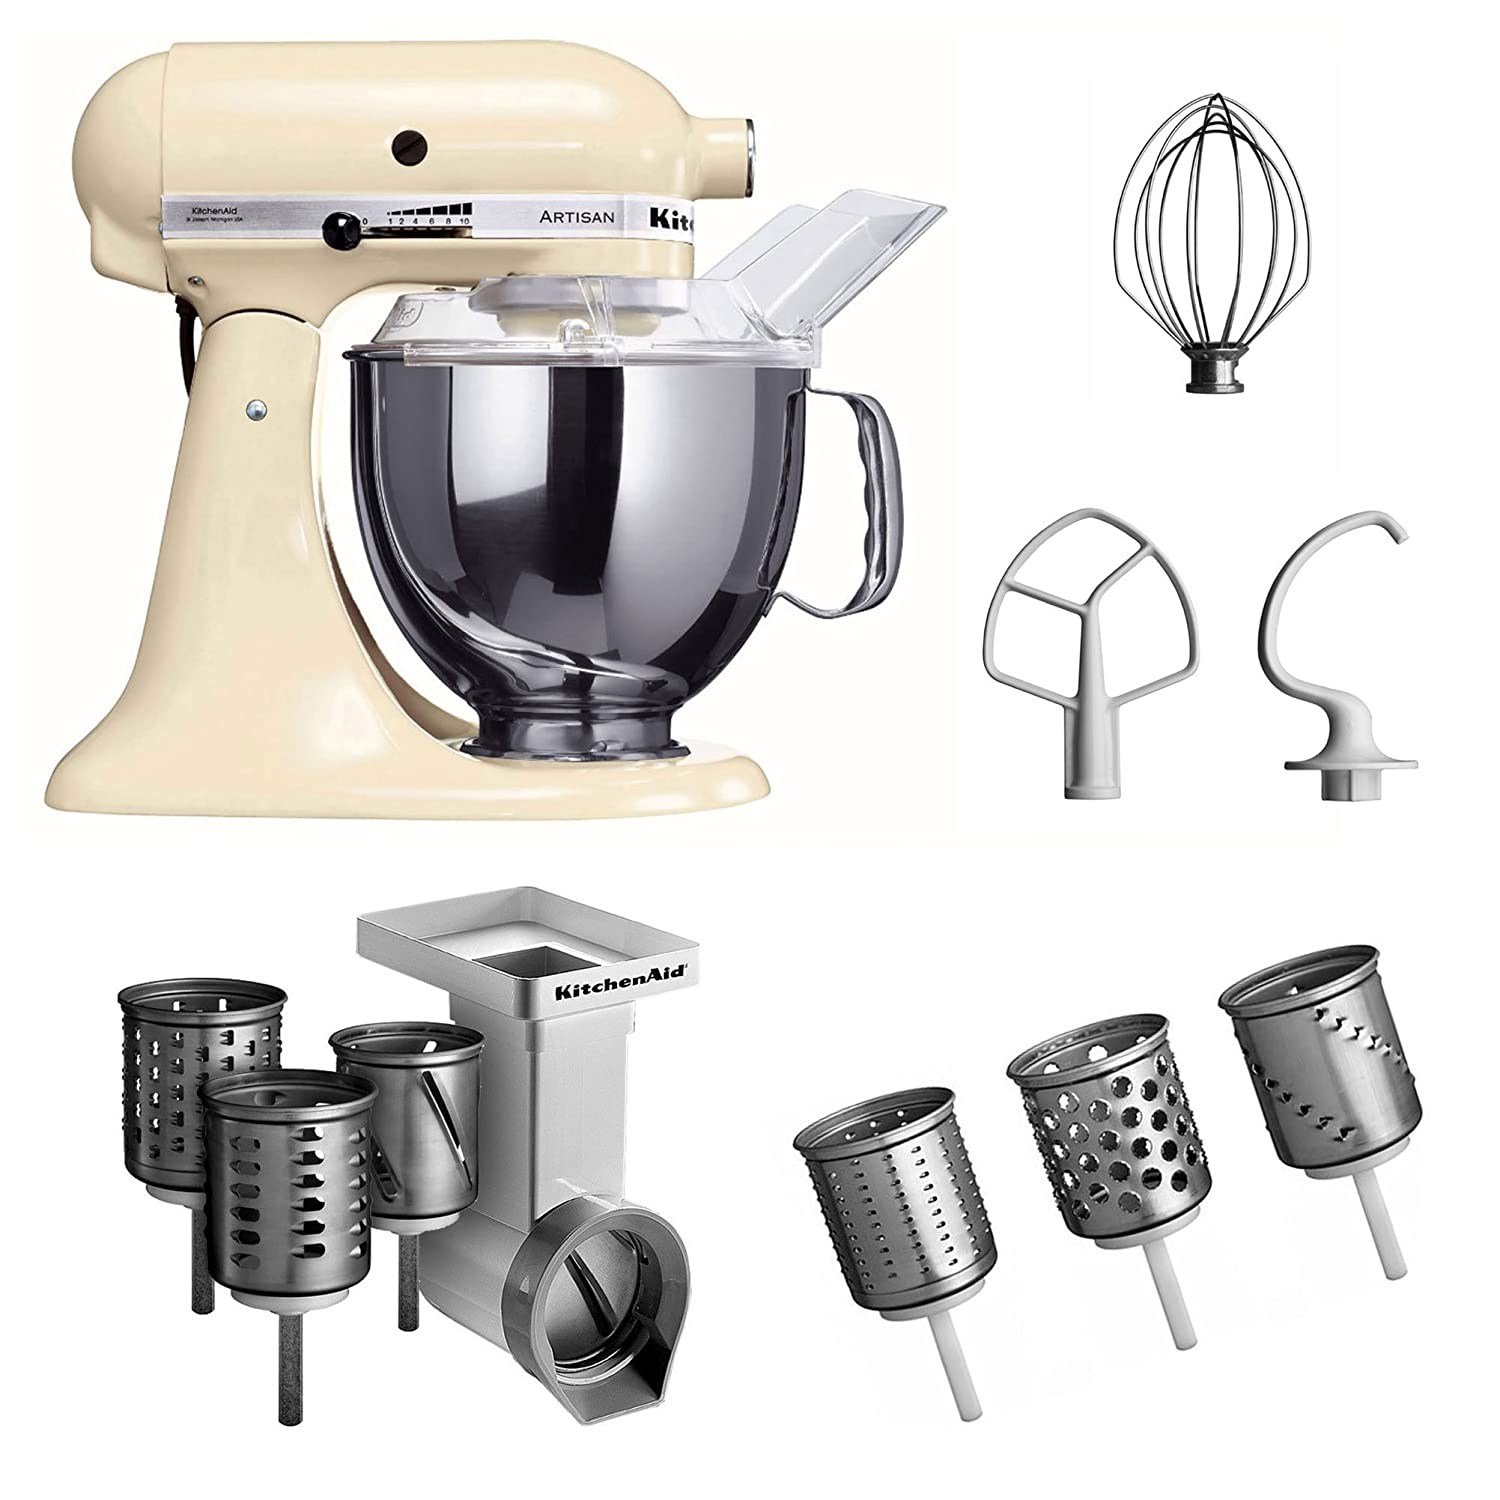 Amazon.de: Kitchenaid KSM150PSEAC + MVSA + EMVSC Kitchenaid ...